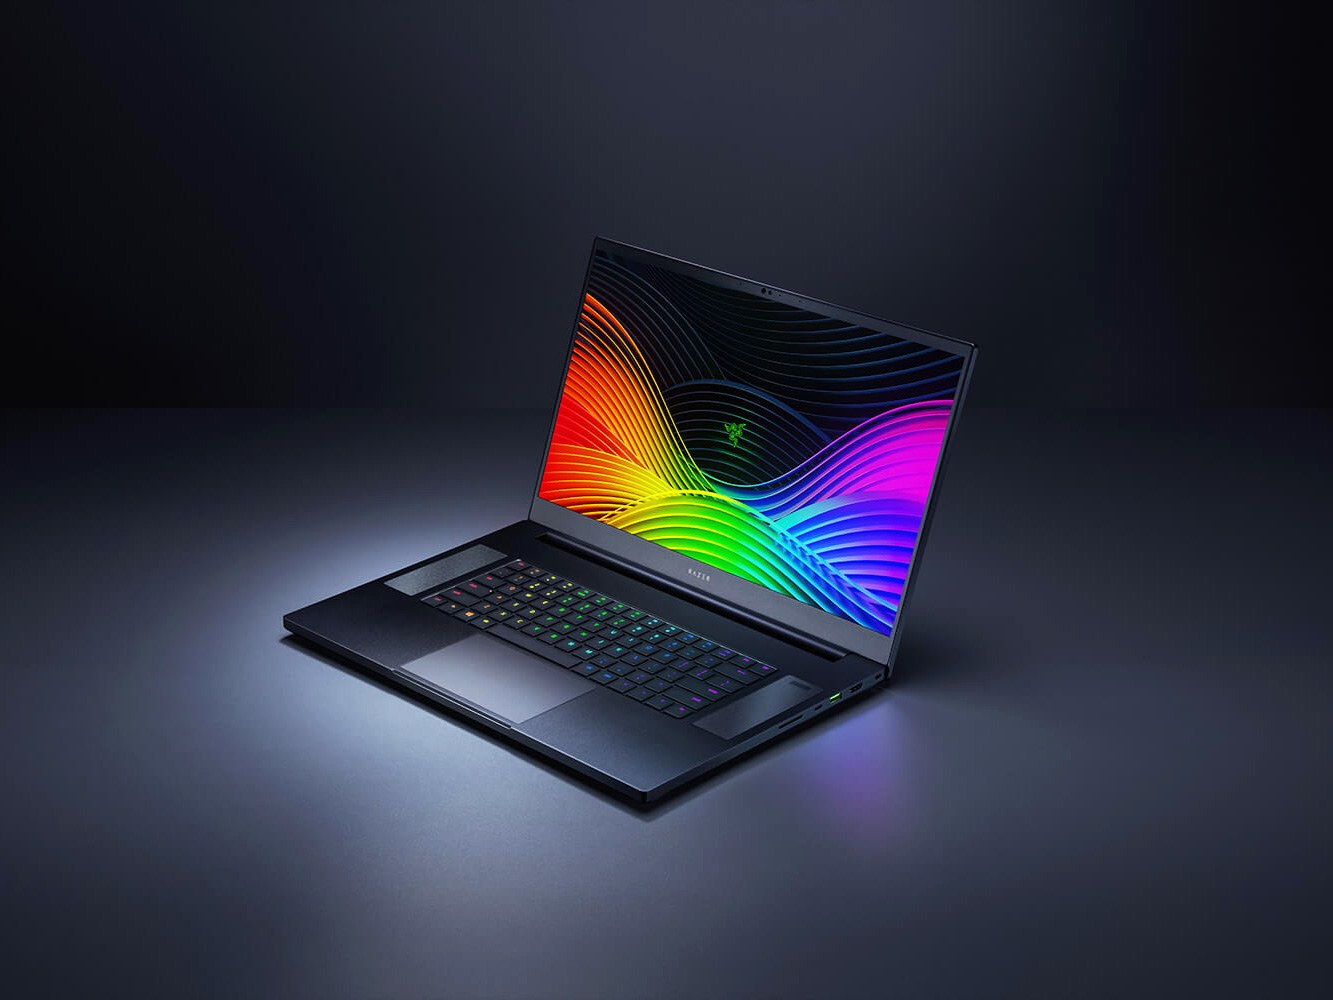 Best Laptops For Animation And Graphic Design 2020